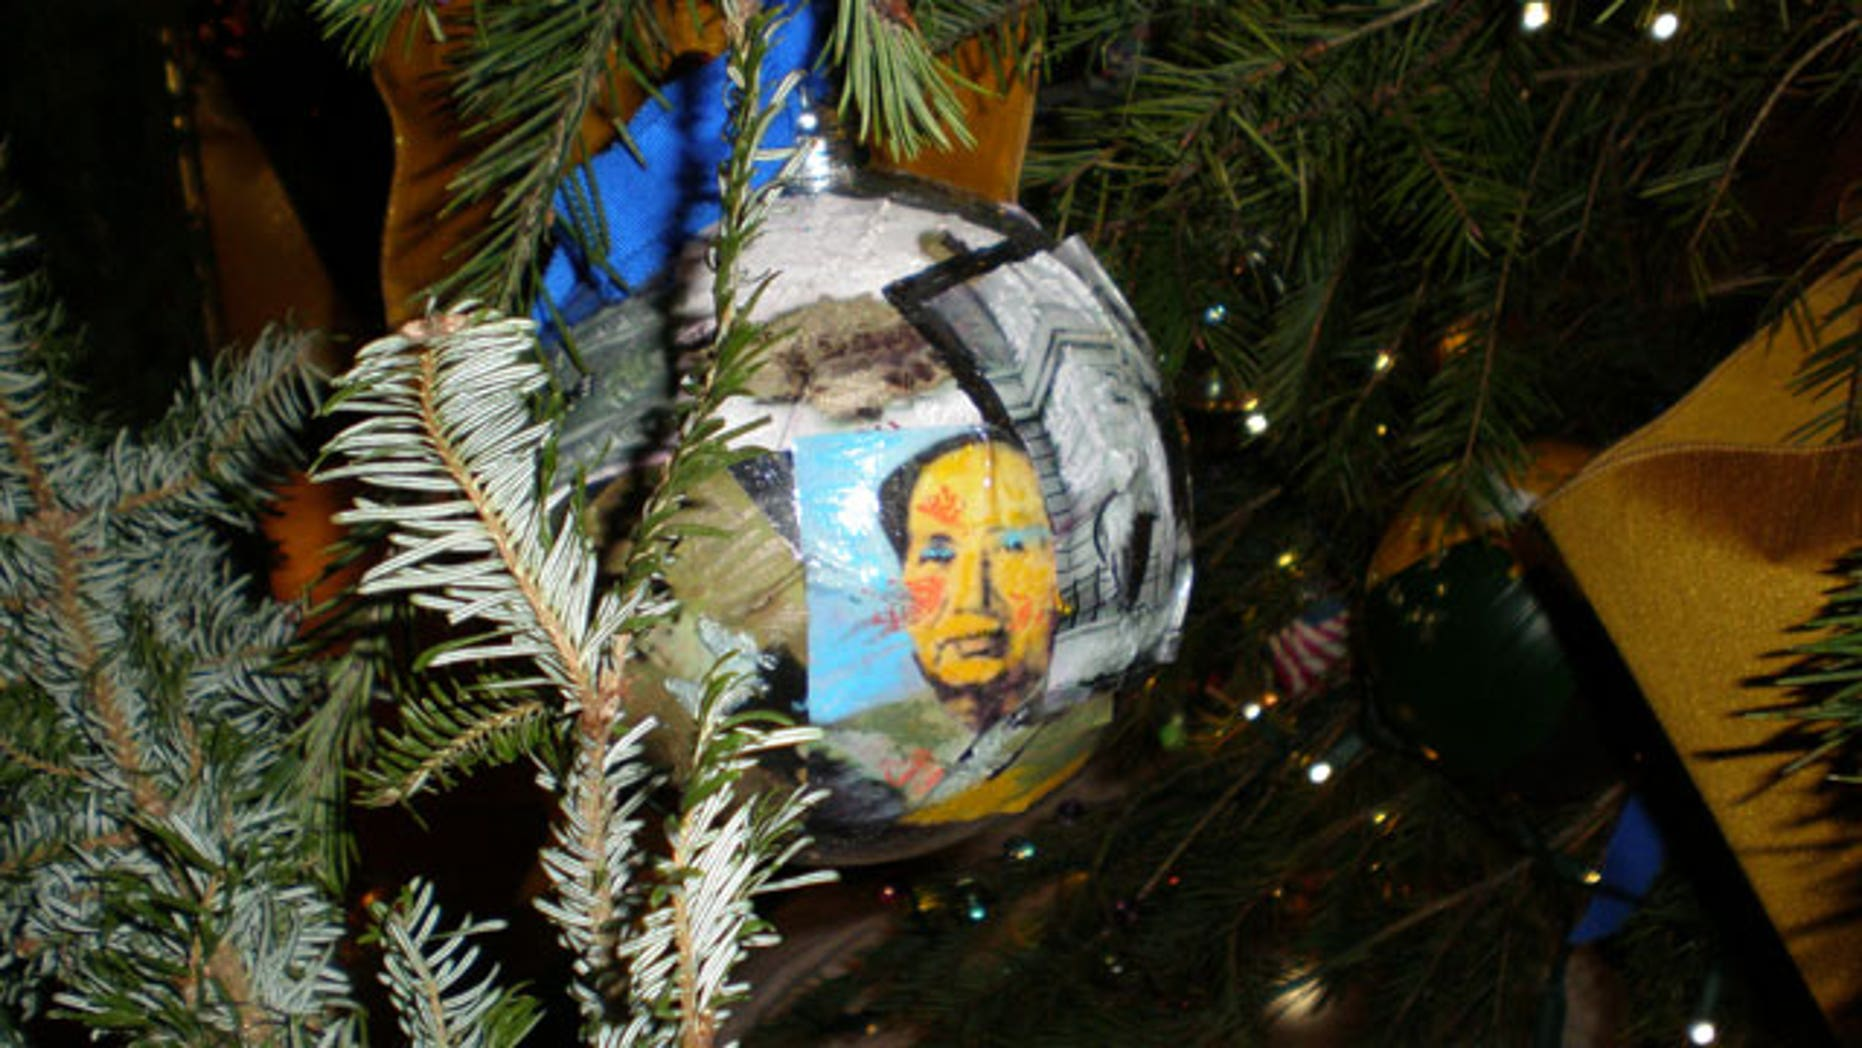 white house christmas decor featuring mao zedong comes under fire